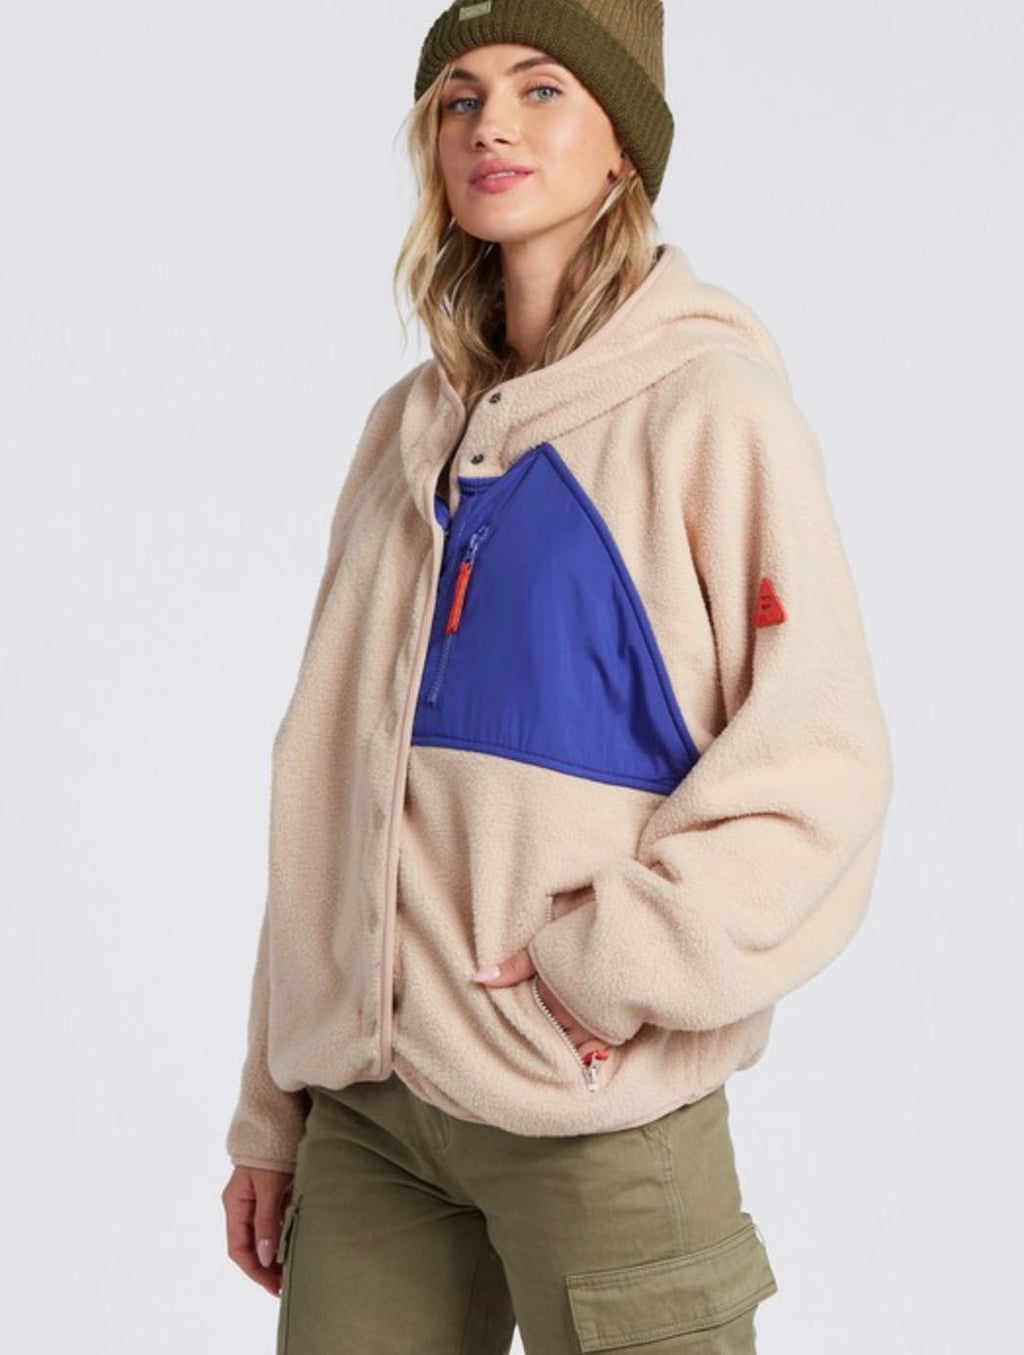 Billabong Tofino Snap Sweater in Moonlight